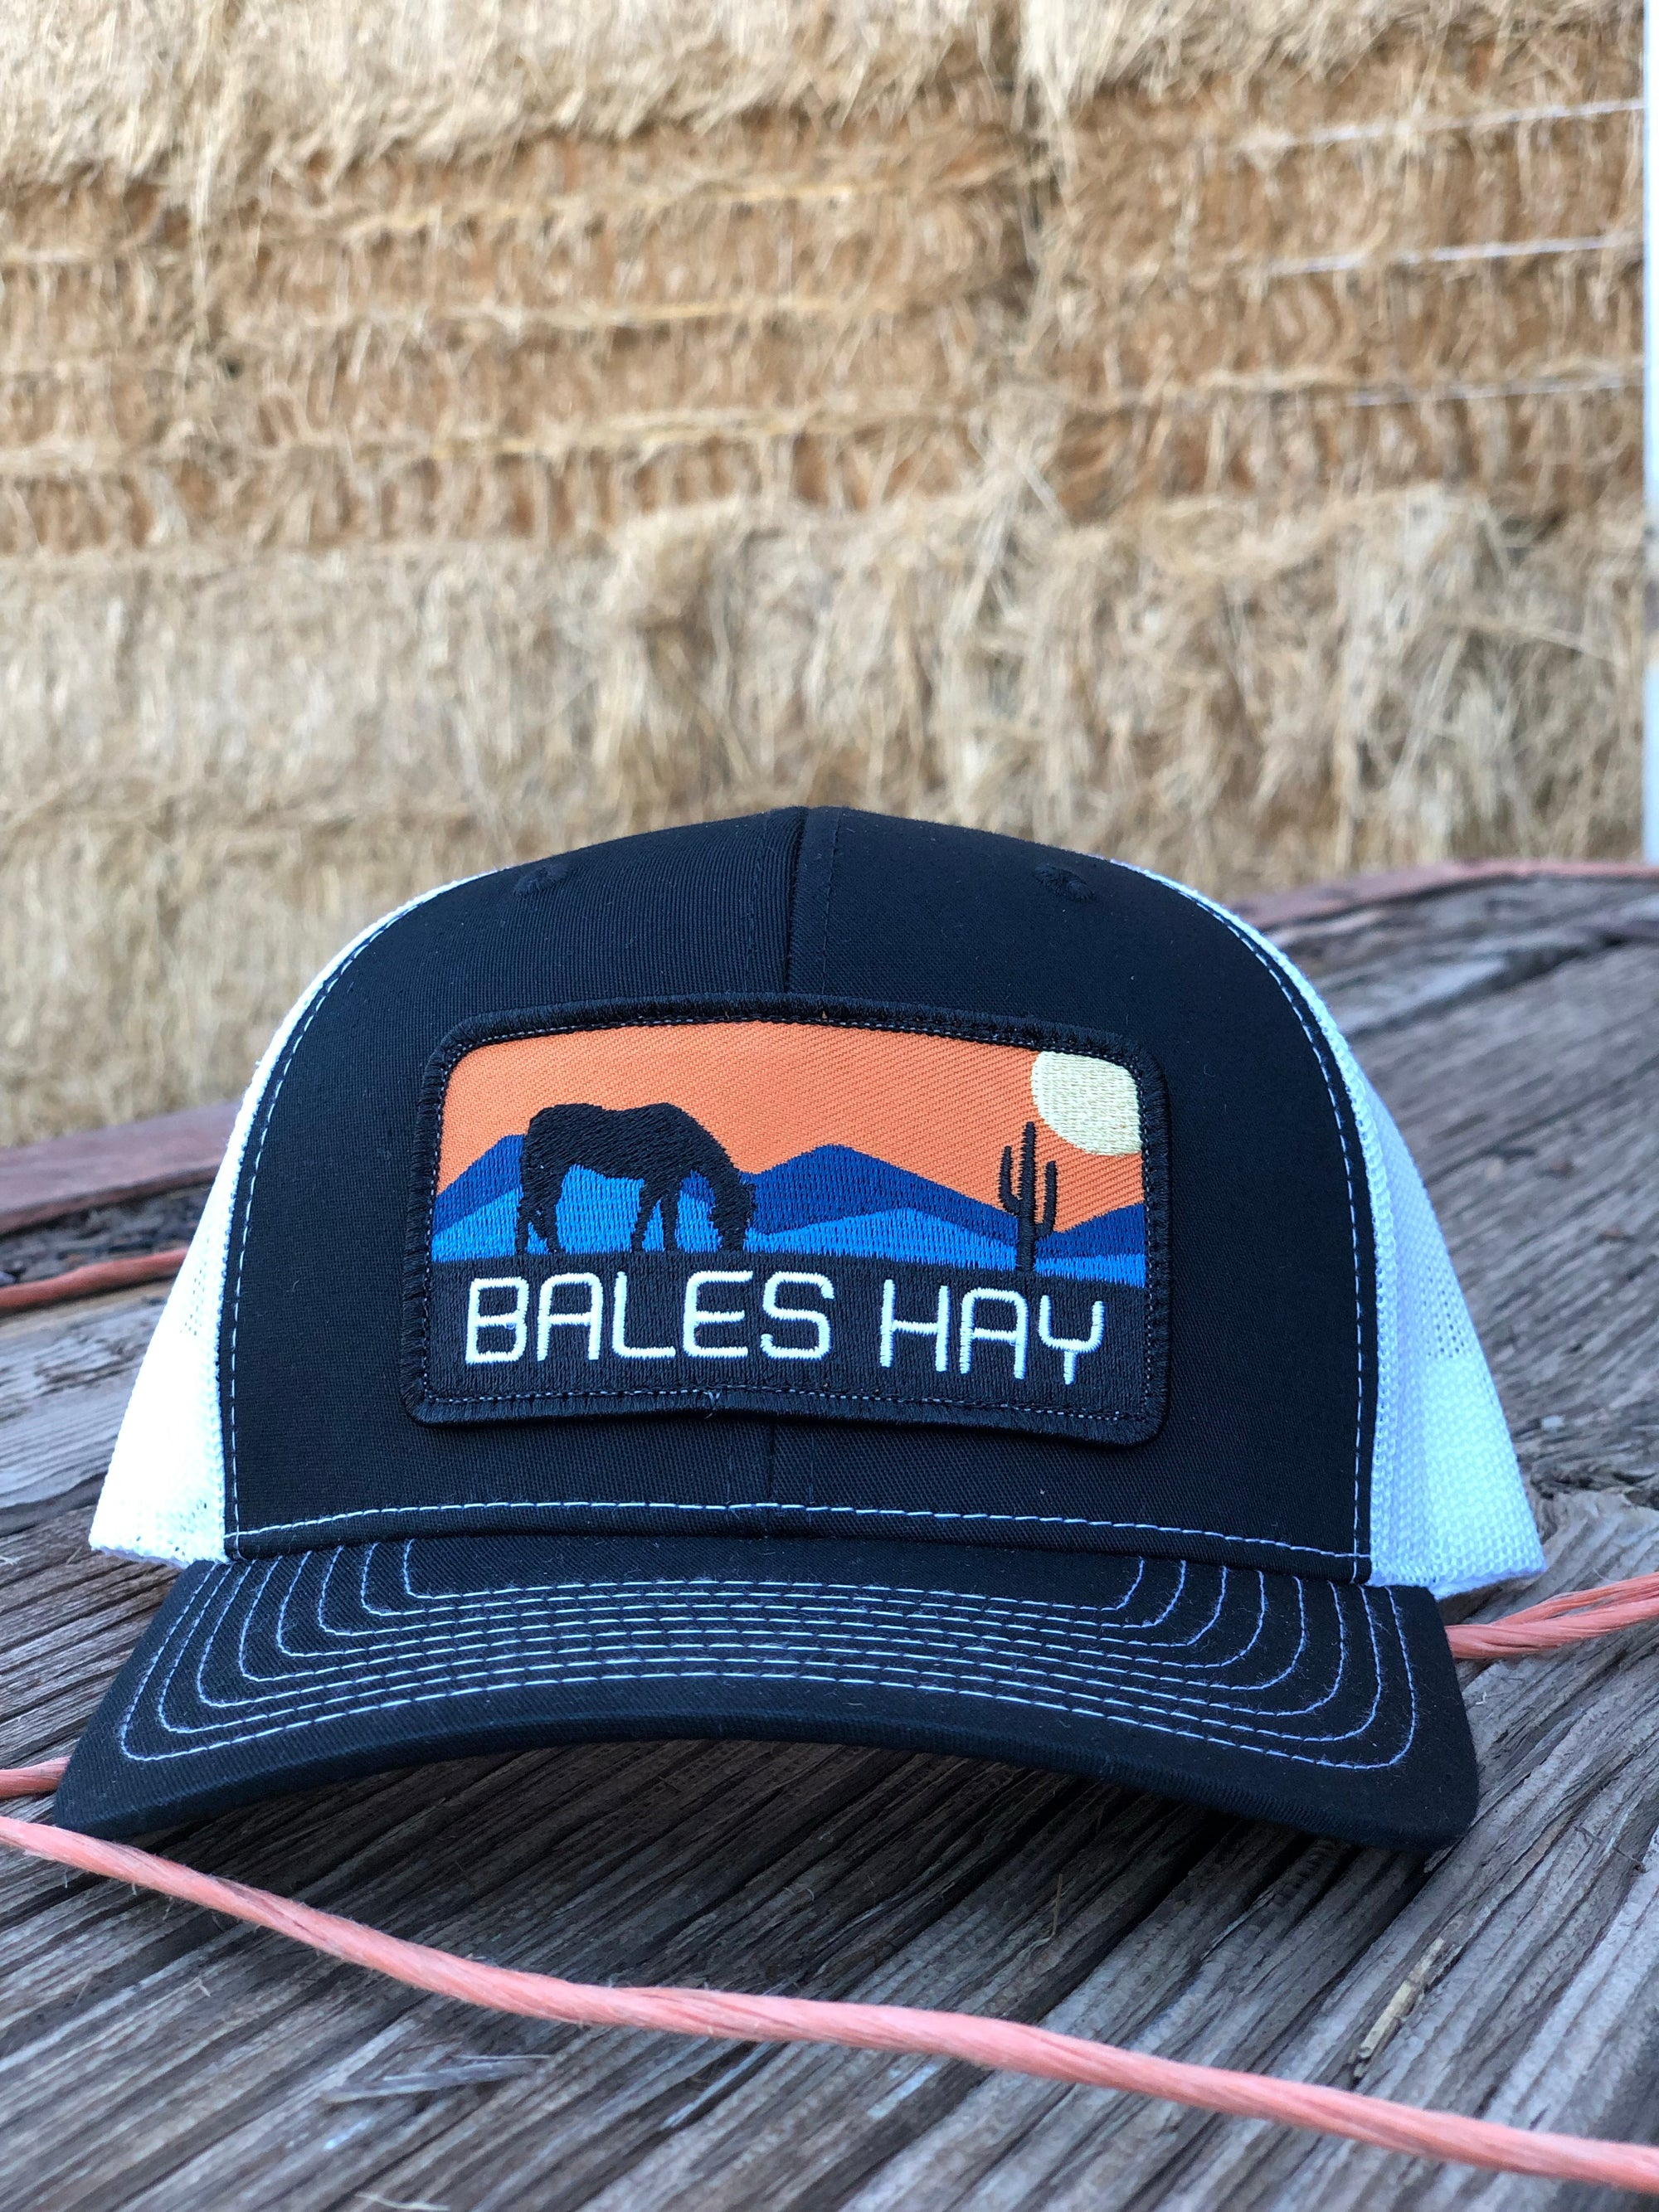 Bales Hay Sunset Horse Patch Hat SALE!